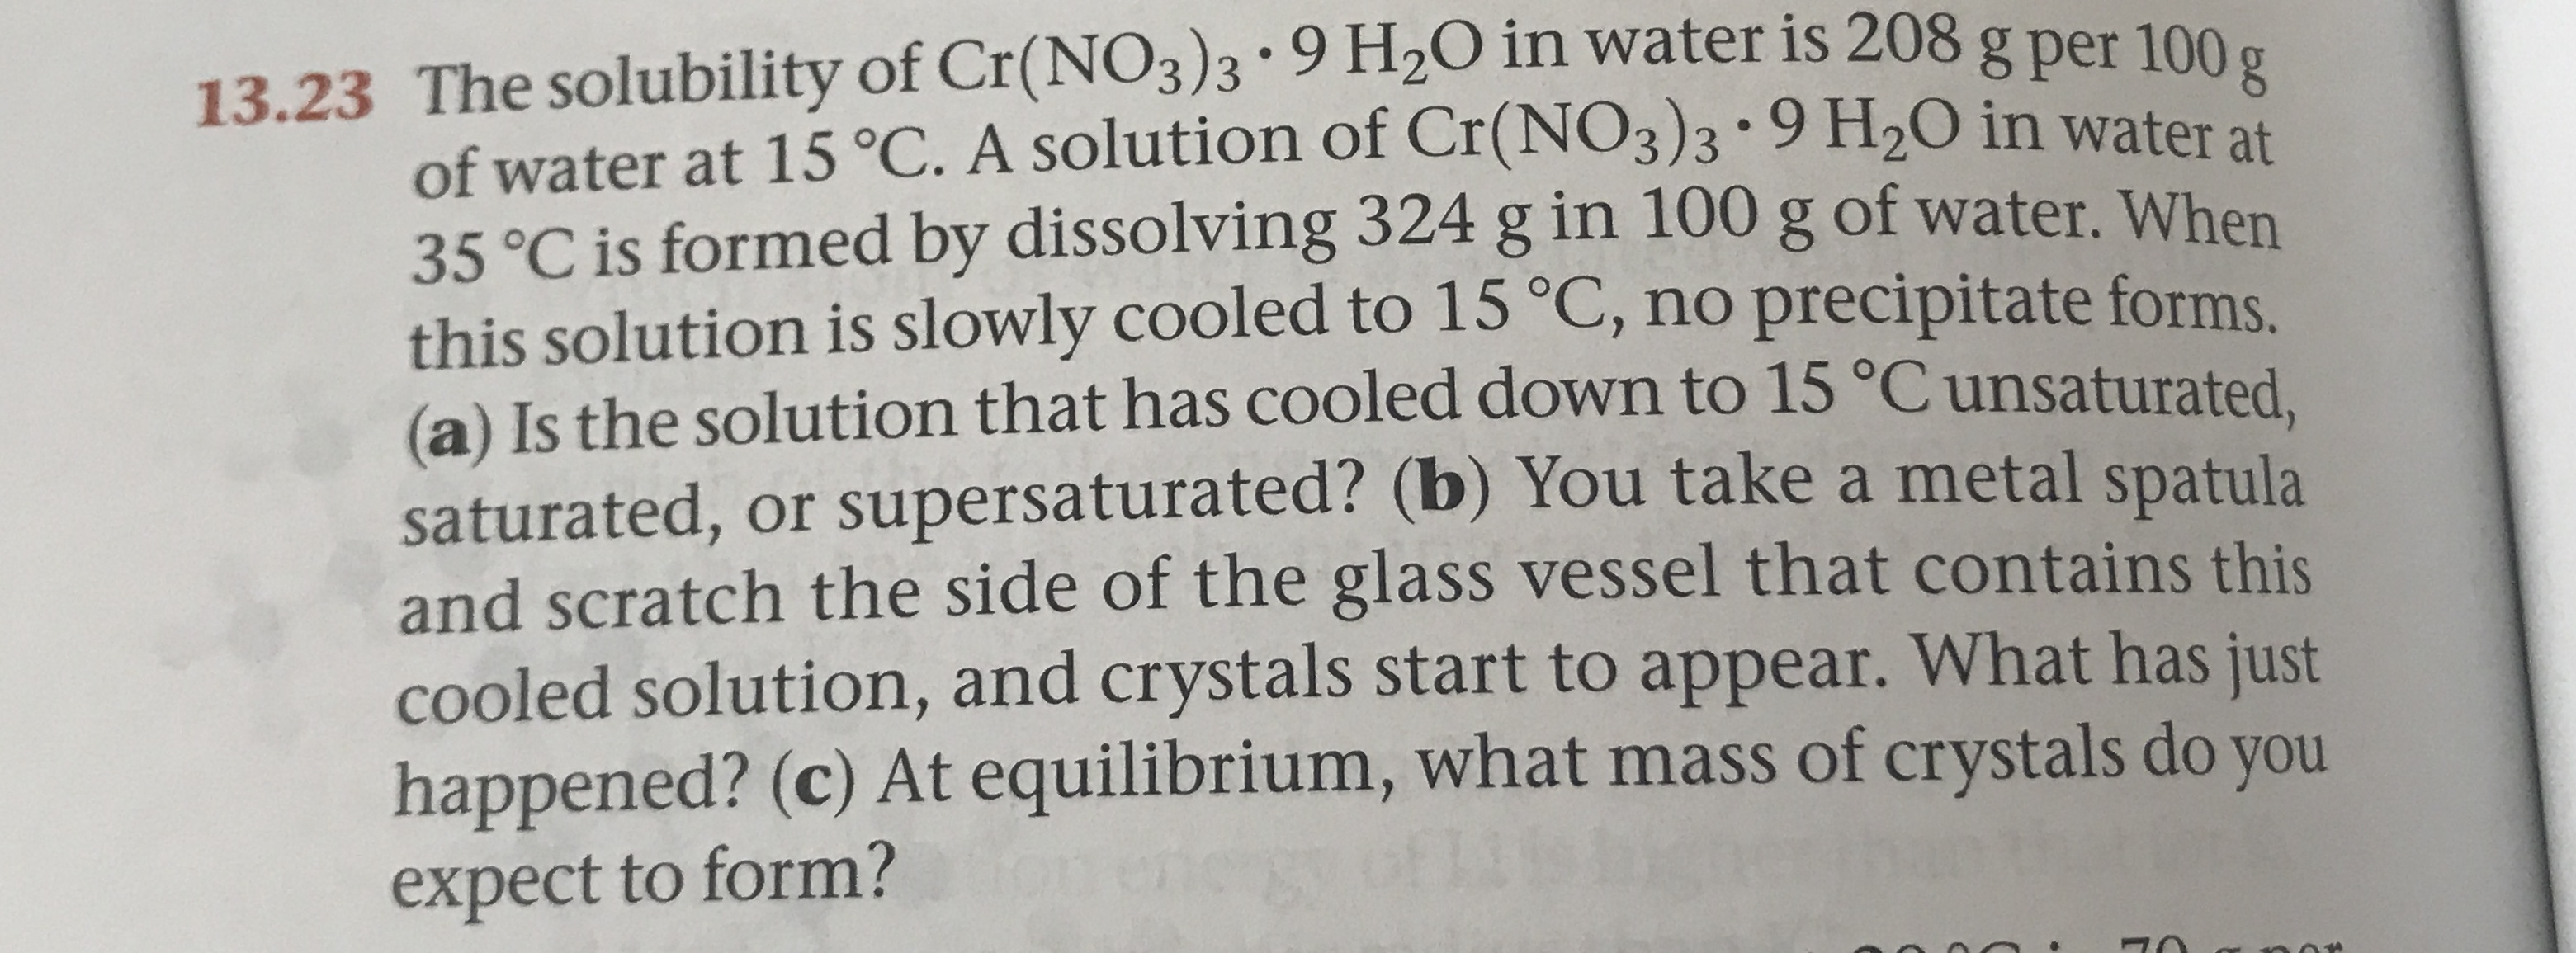 13.23 The solubility of Cr(NO3)3 . 9 H2O in water is 208g per 100 of water at 15 °C. A solution of Cr(NO3)3 * 9 H20 in water at 35°C is formed by dissolving 324 g in 100 g of water. When this solution is slowly cooled to 15 °C, no precipitate forms (a) Is the solution that has cooled down to 15 °C unsaturated saturated, or supersaturated? (b) You take a metal spatula and scratch the side of the glass vessel that contains this cooled solution, and crystals start to appear. What has just happened? (c) At equilibrium, what mass of crystals do you expect to form?